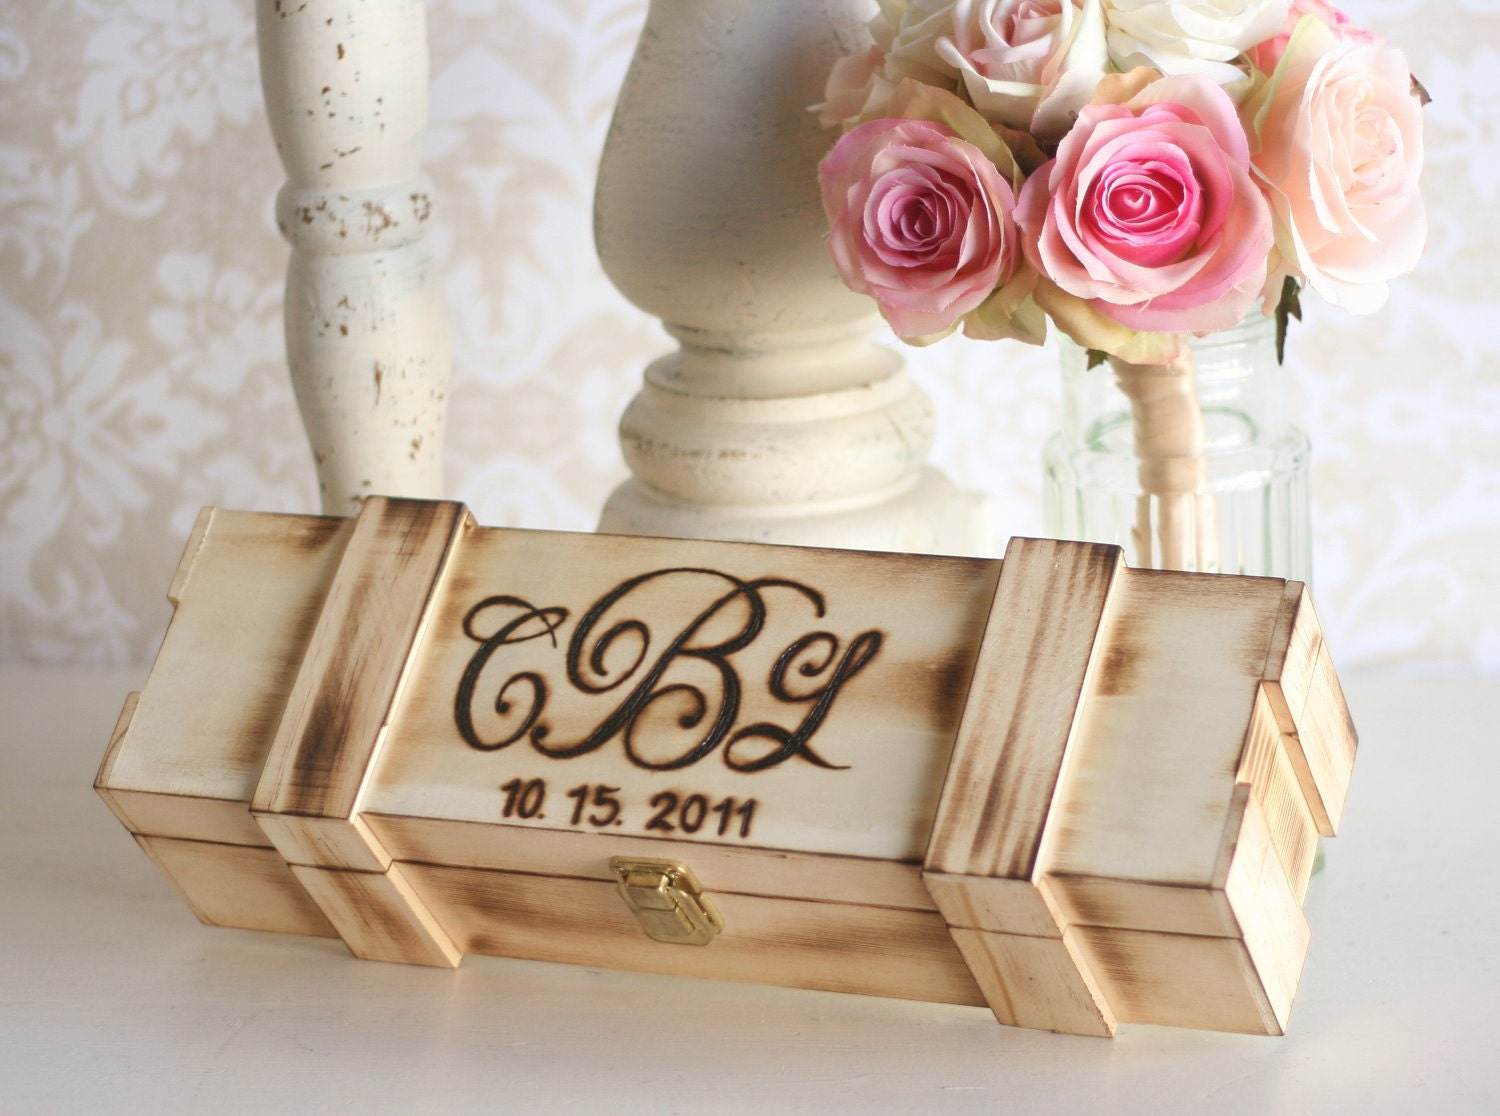 Unique Gifts Wedding: Personalized Wine Box Custom Christmas Gift By Braggingbags